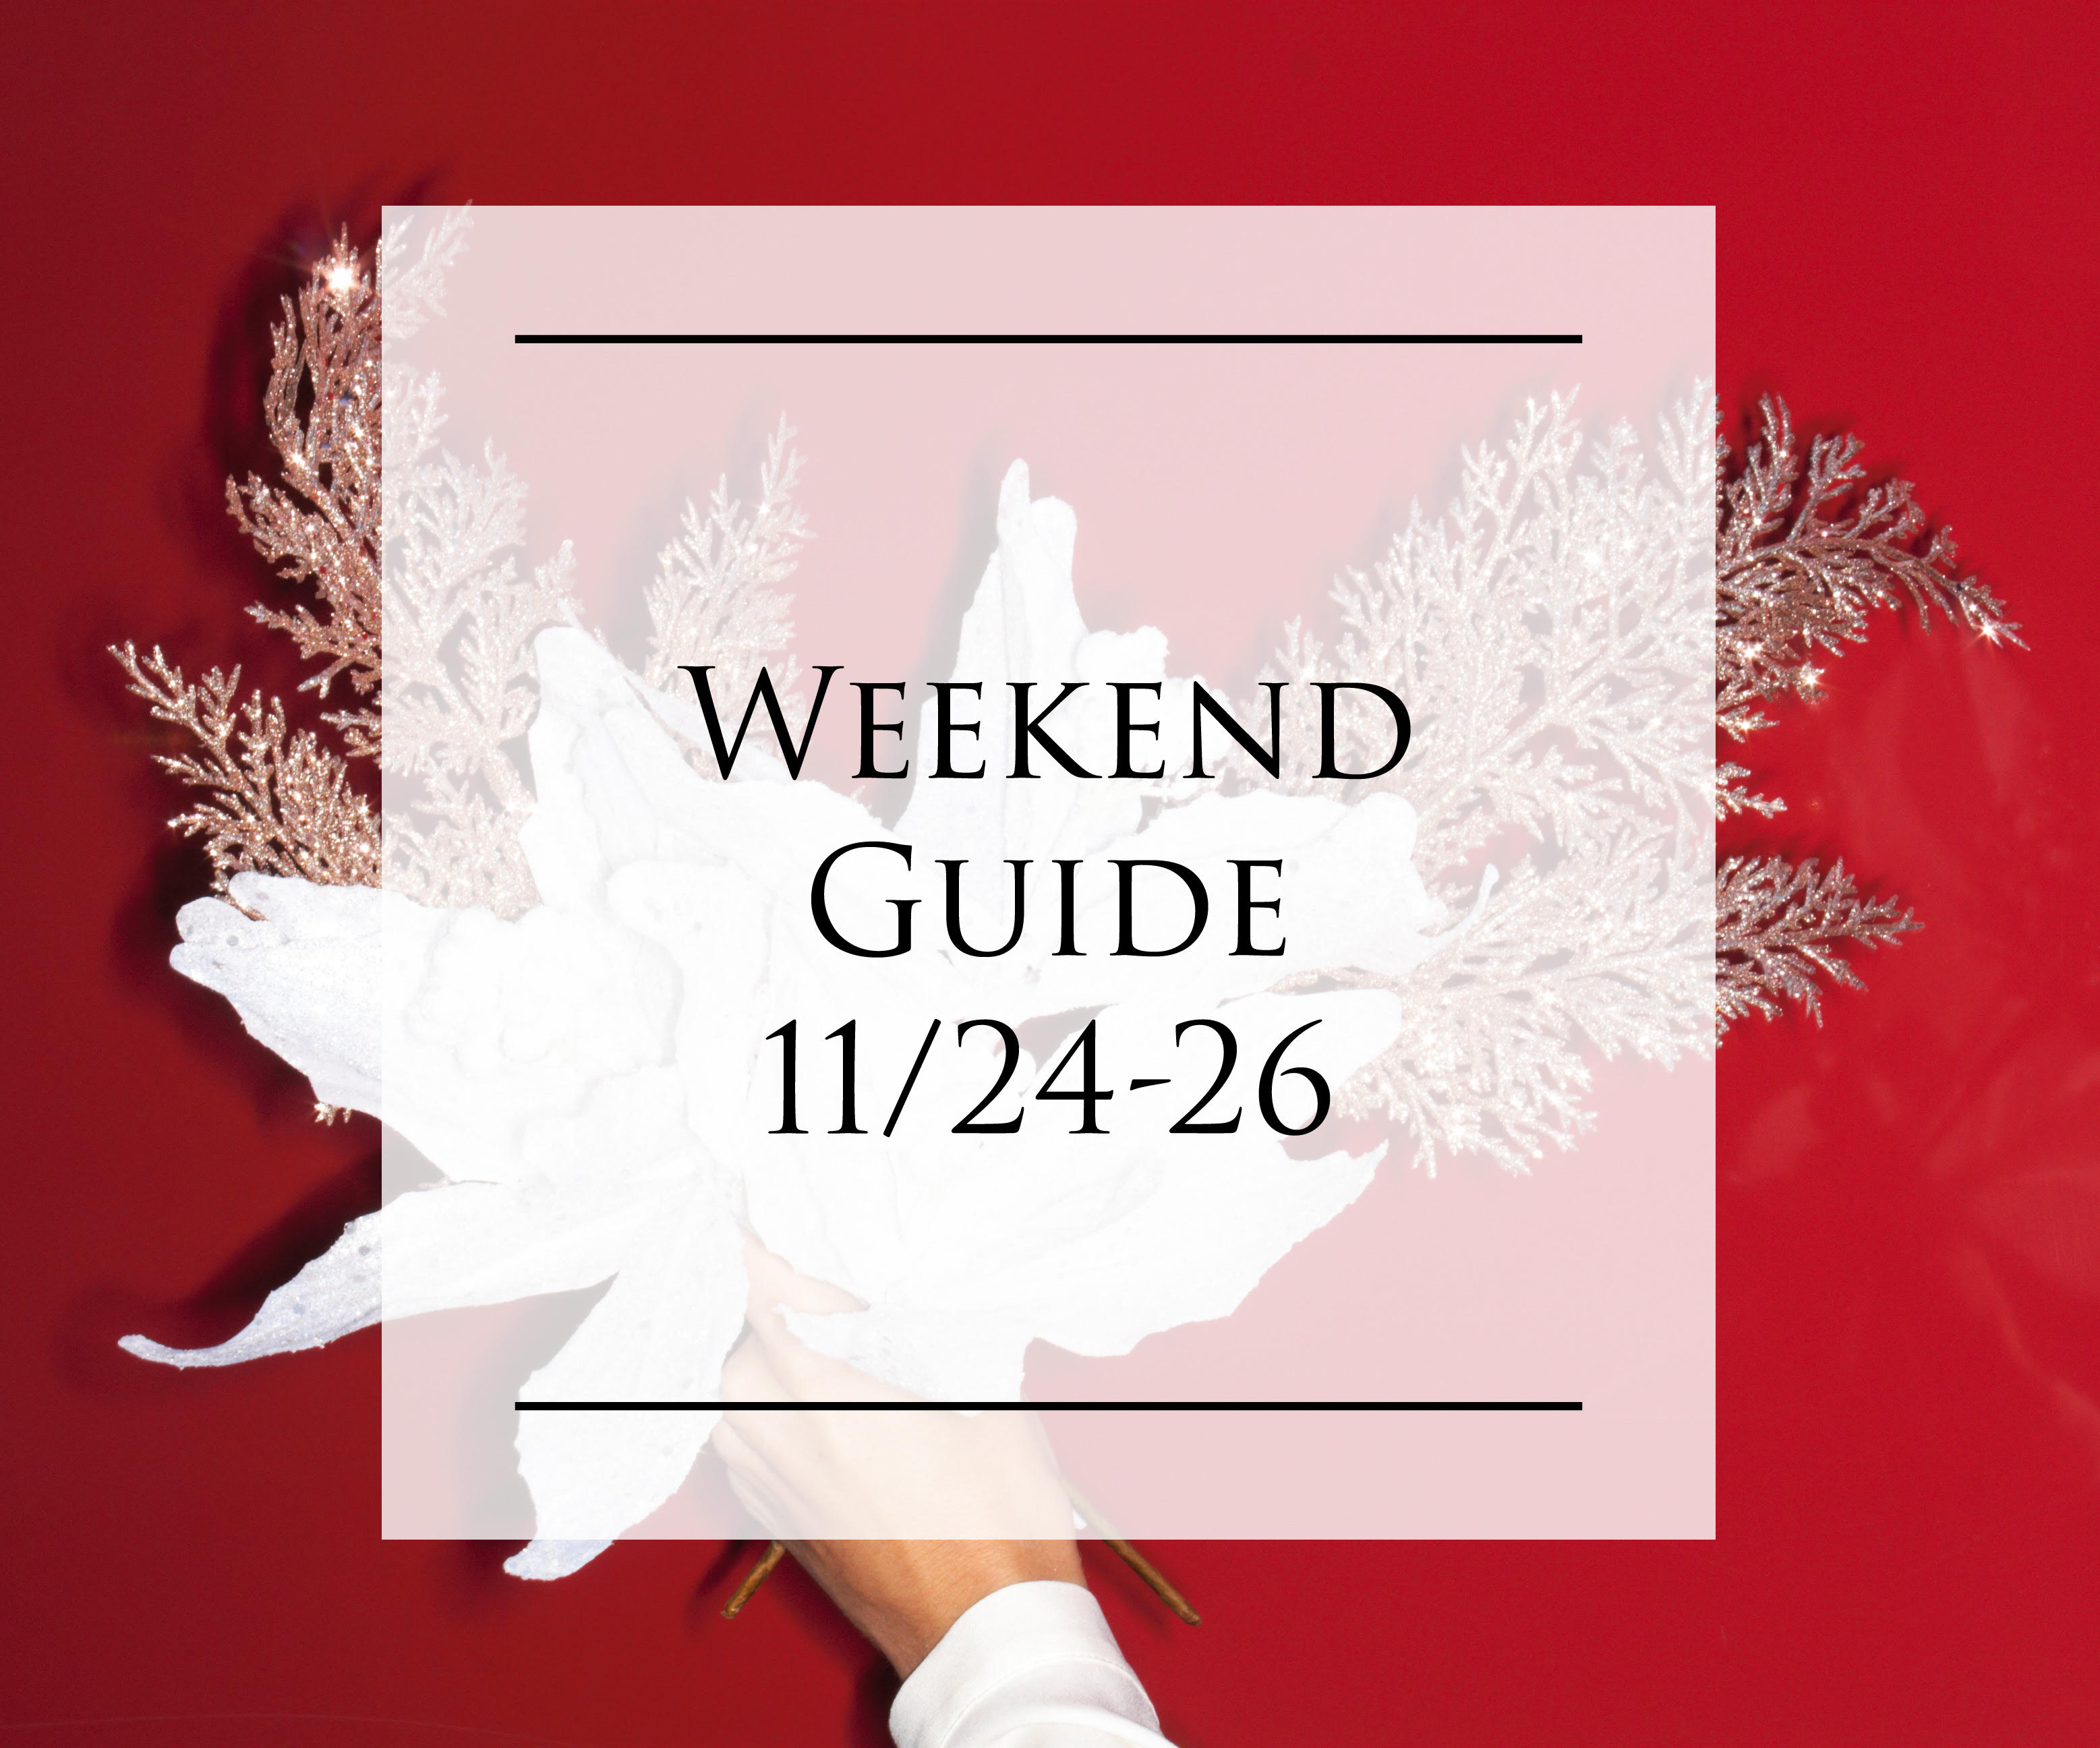 Weekend Guide 11/24-26 - Chicago Painted Red